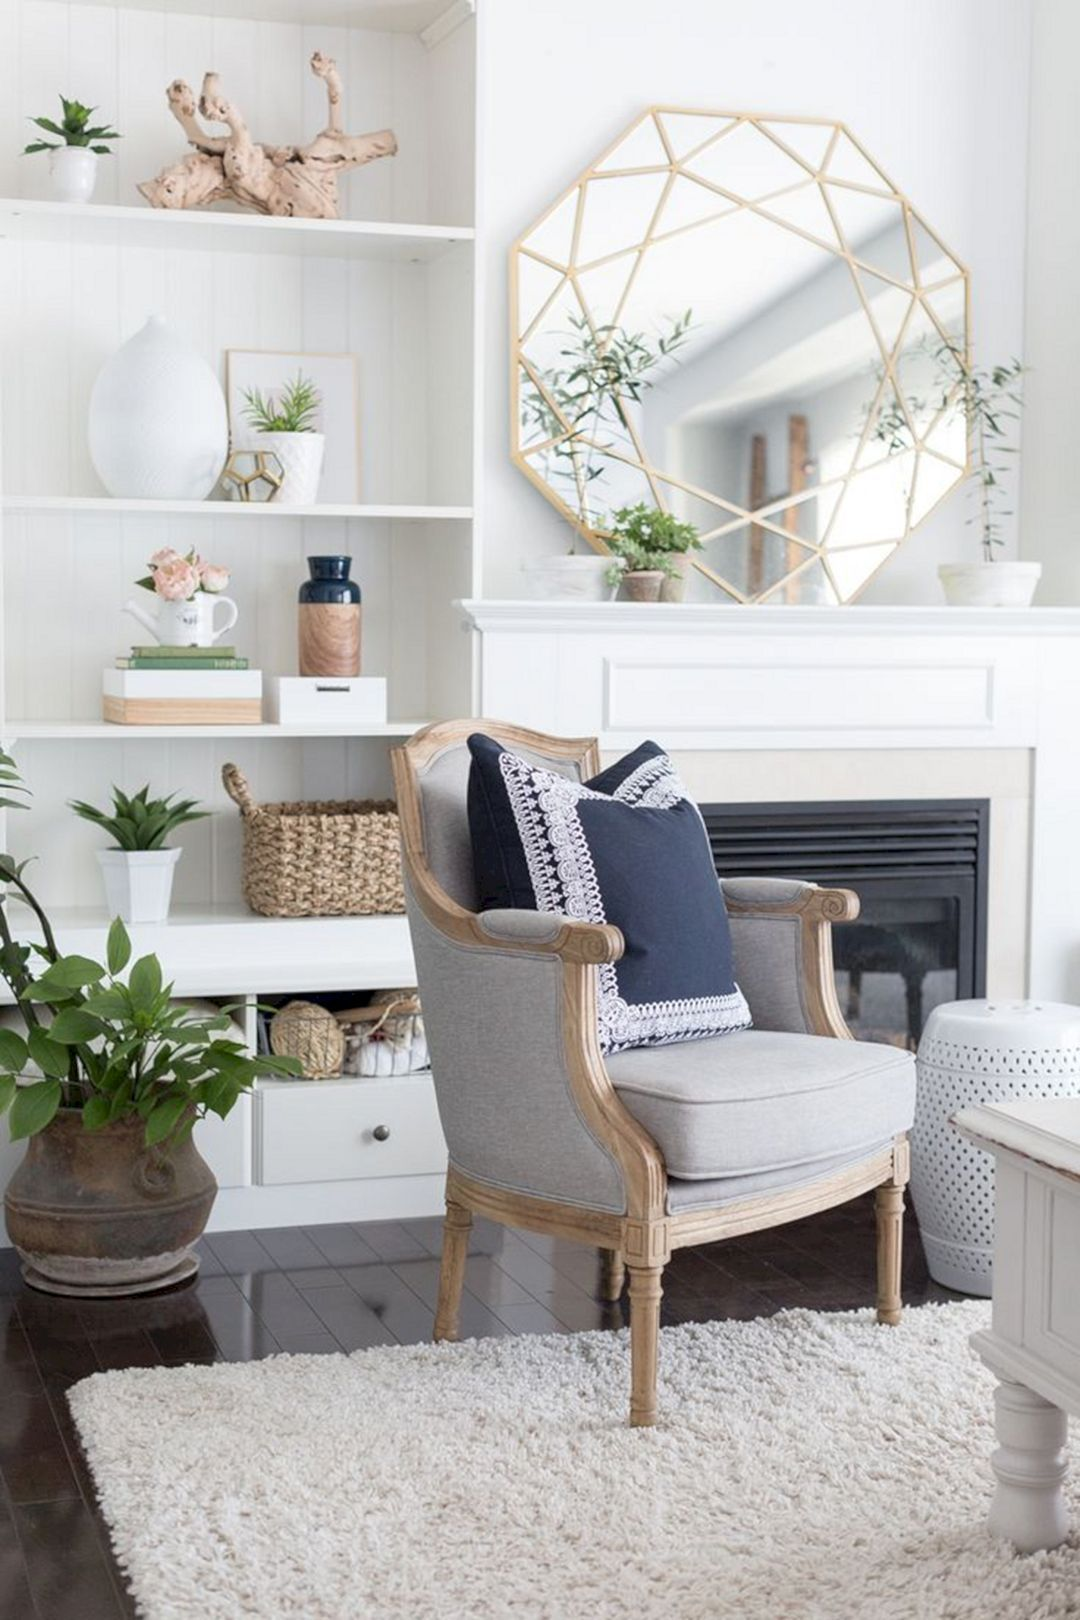 60+ Most Popular Focal Points Ideas To Build A Beautiful ...